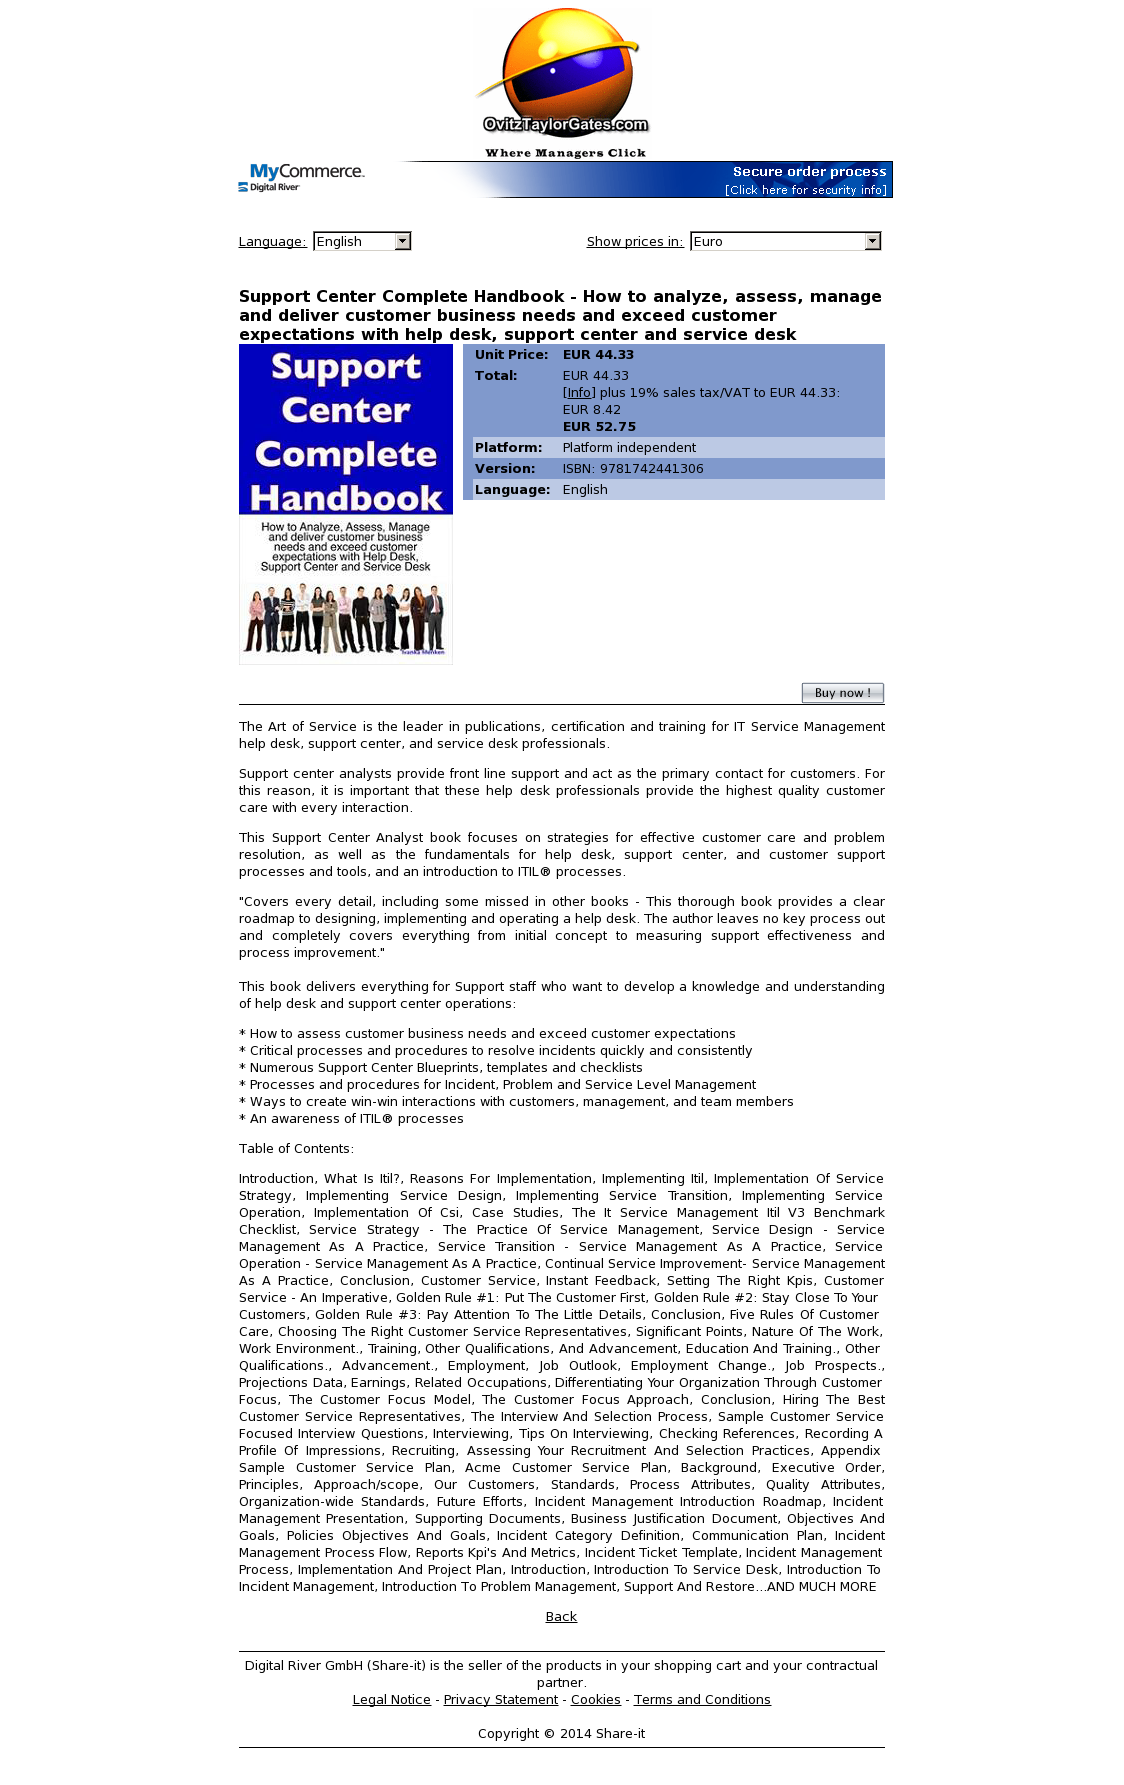 Support Center Complete Handbook - How to analyze, assess, manage and deliver customer business needs and exceed customer expectations with help desk, support center and service desk